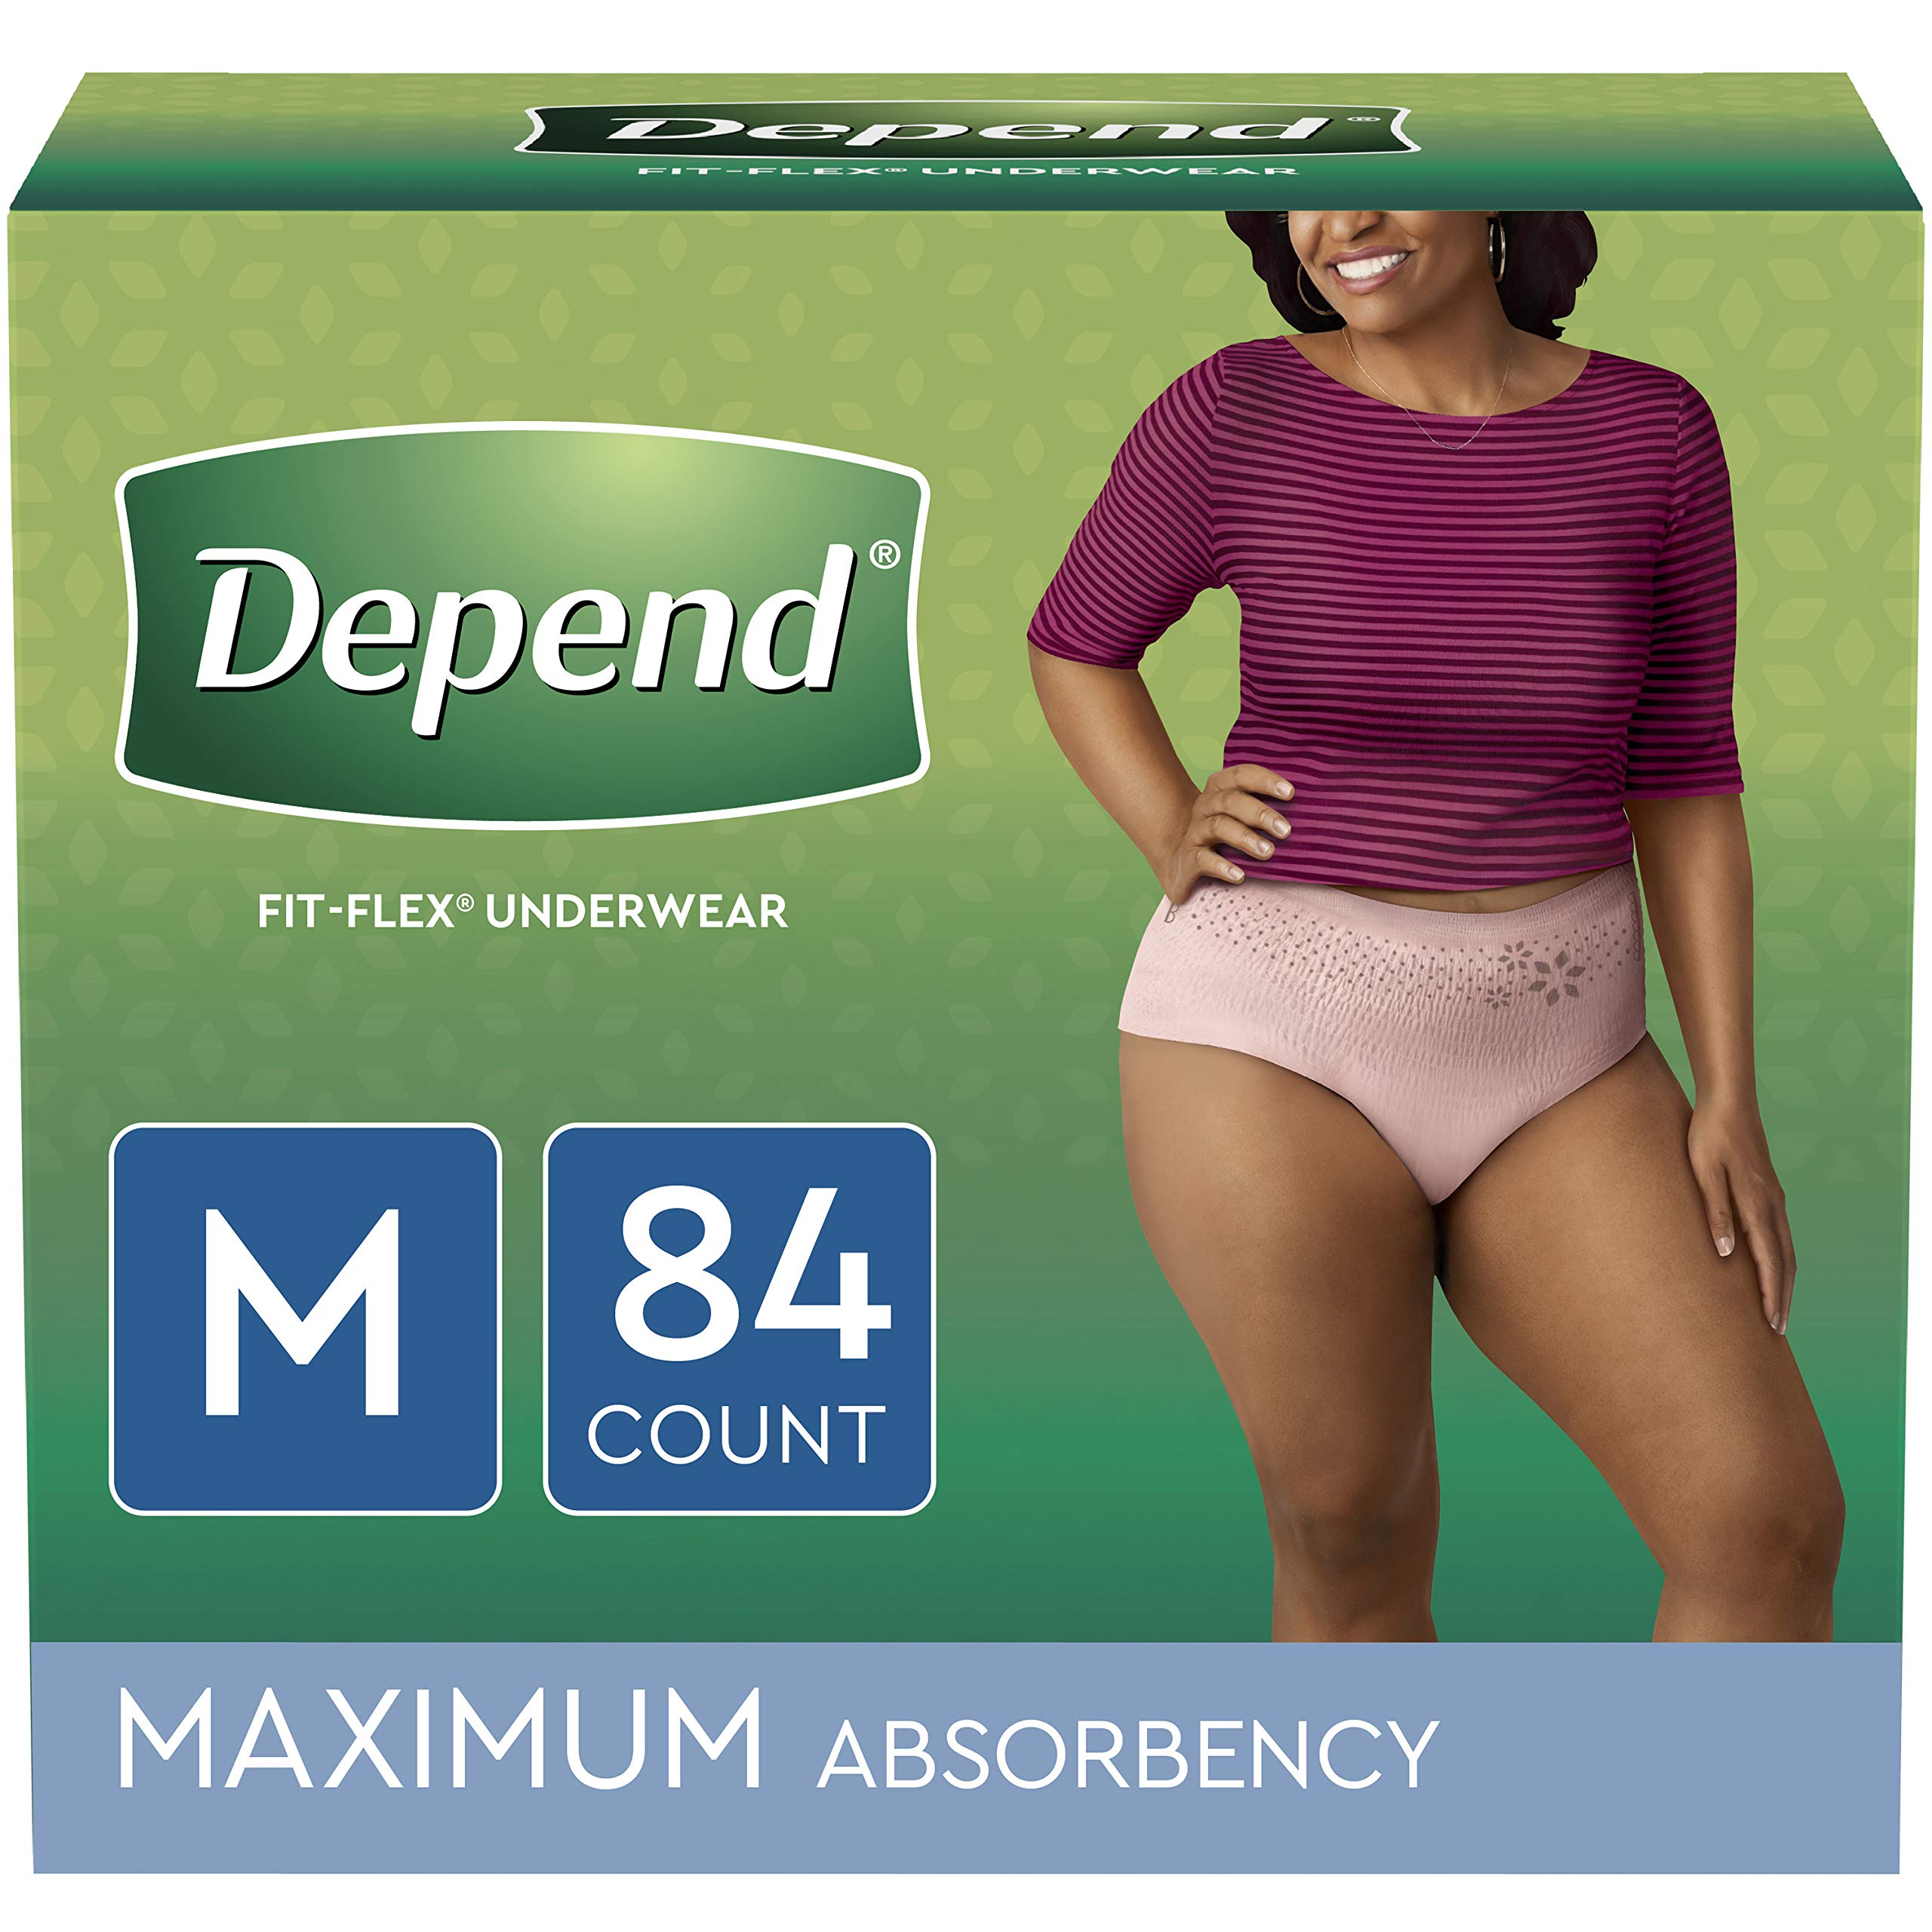 Depend FIT-FLEX Incontinence Underwear for Women, Disposable, Maximum Absorbency, Medium, Blush, 84 Count by Depend